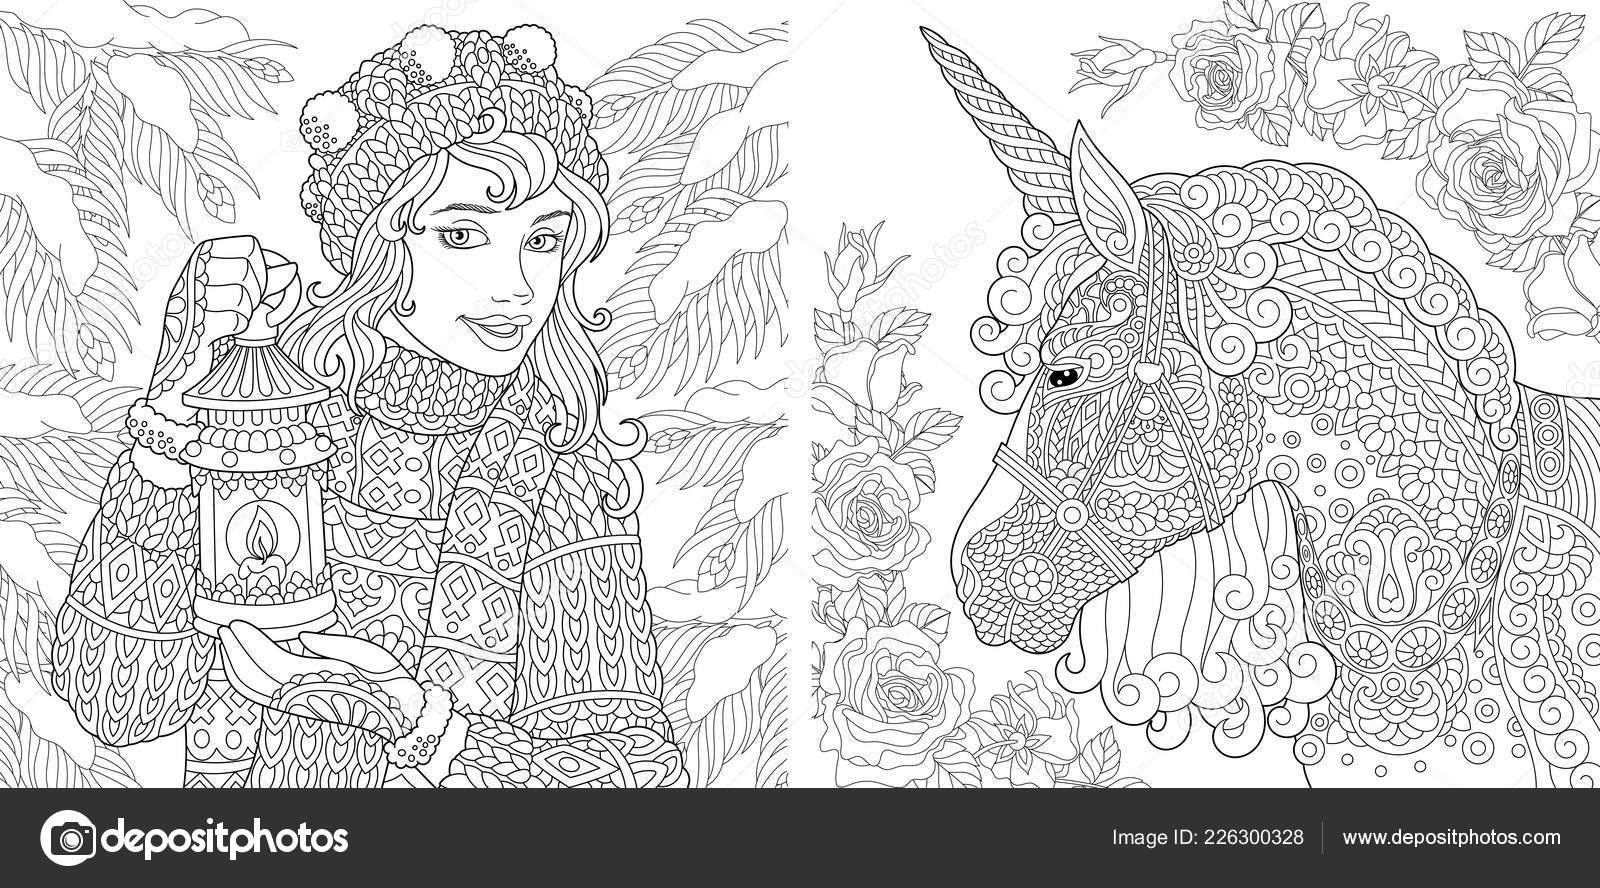 Fantasy Coloring Pages Coloring Book Adults Colouring Pictures